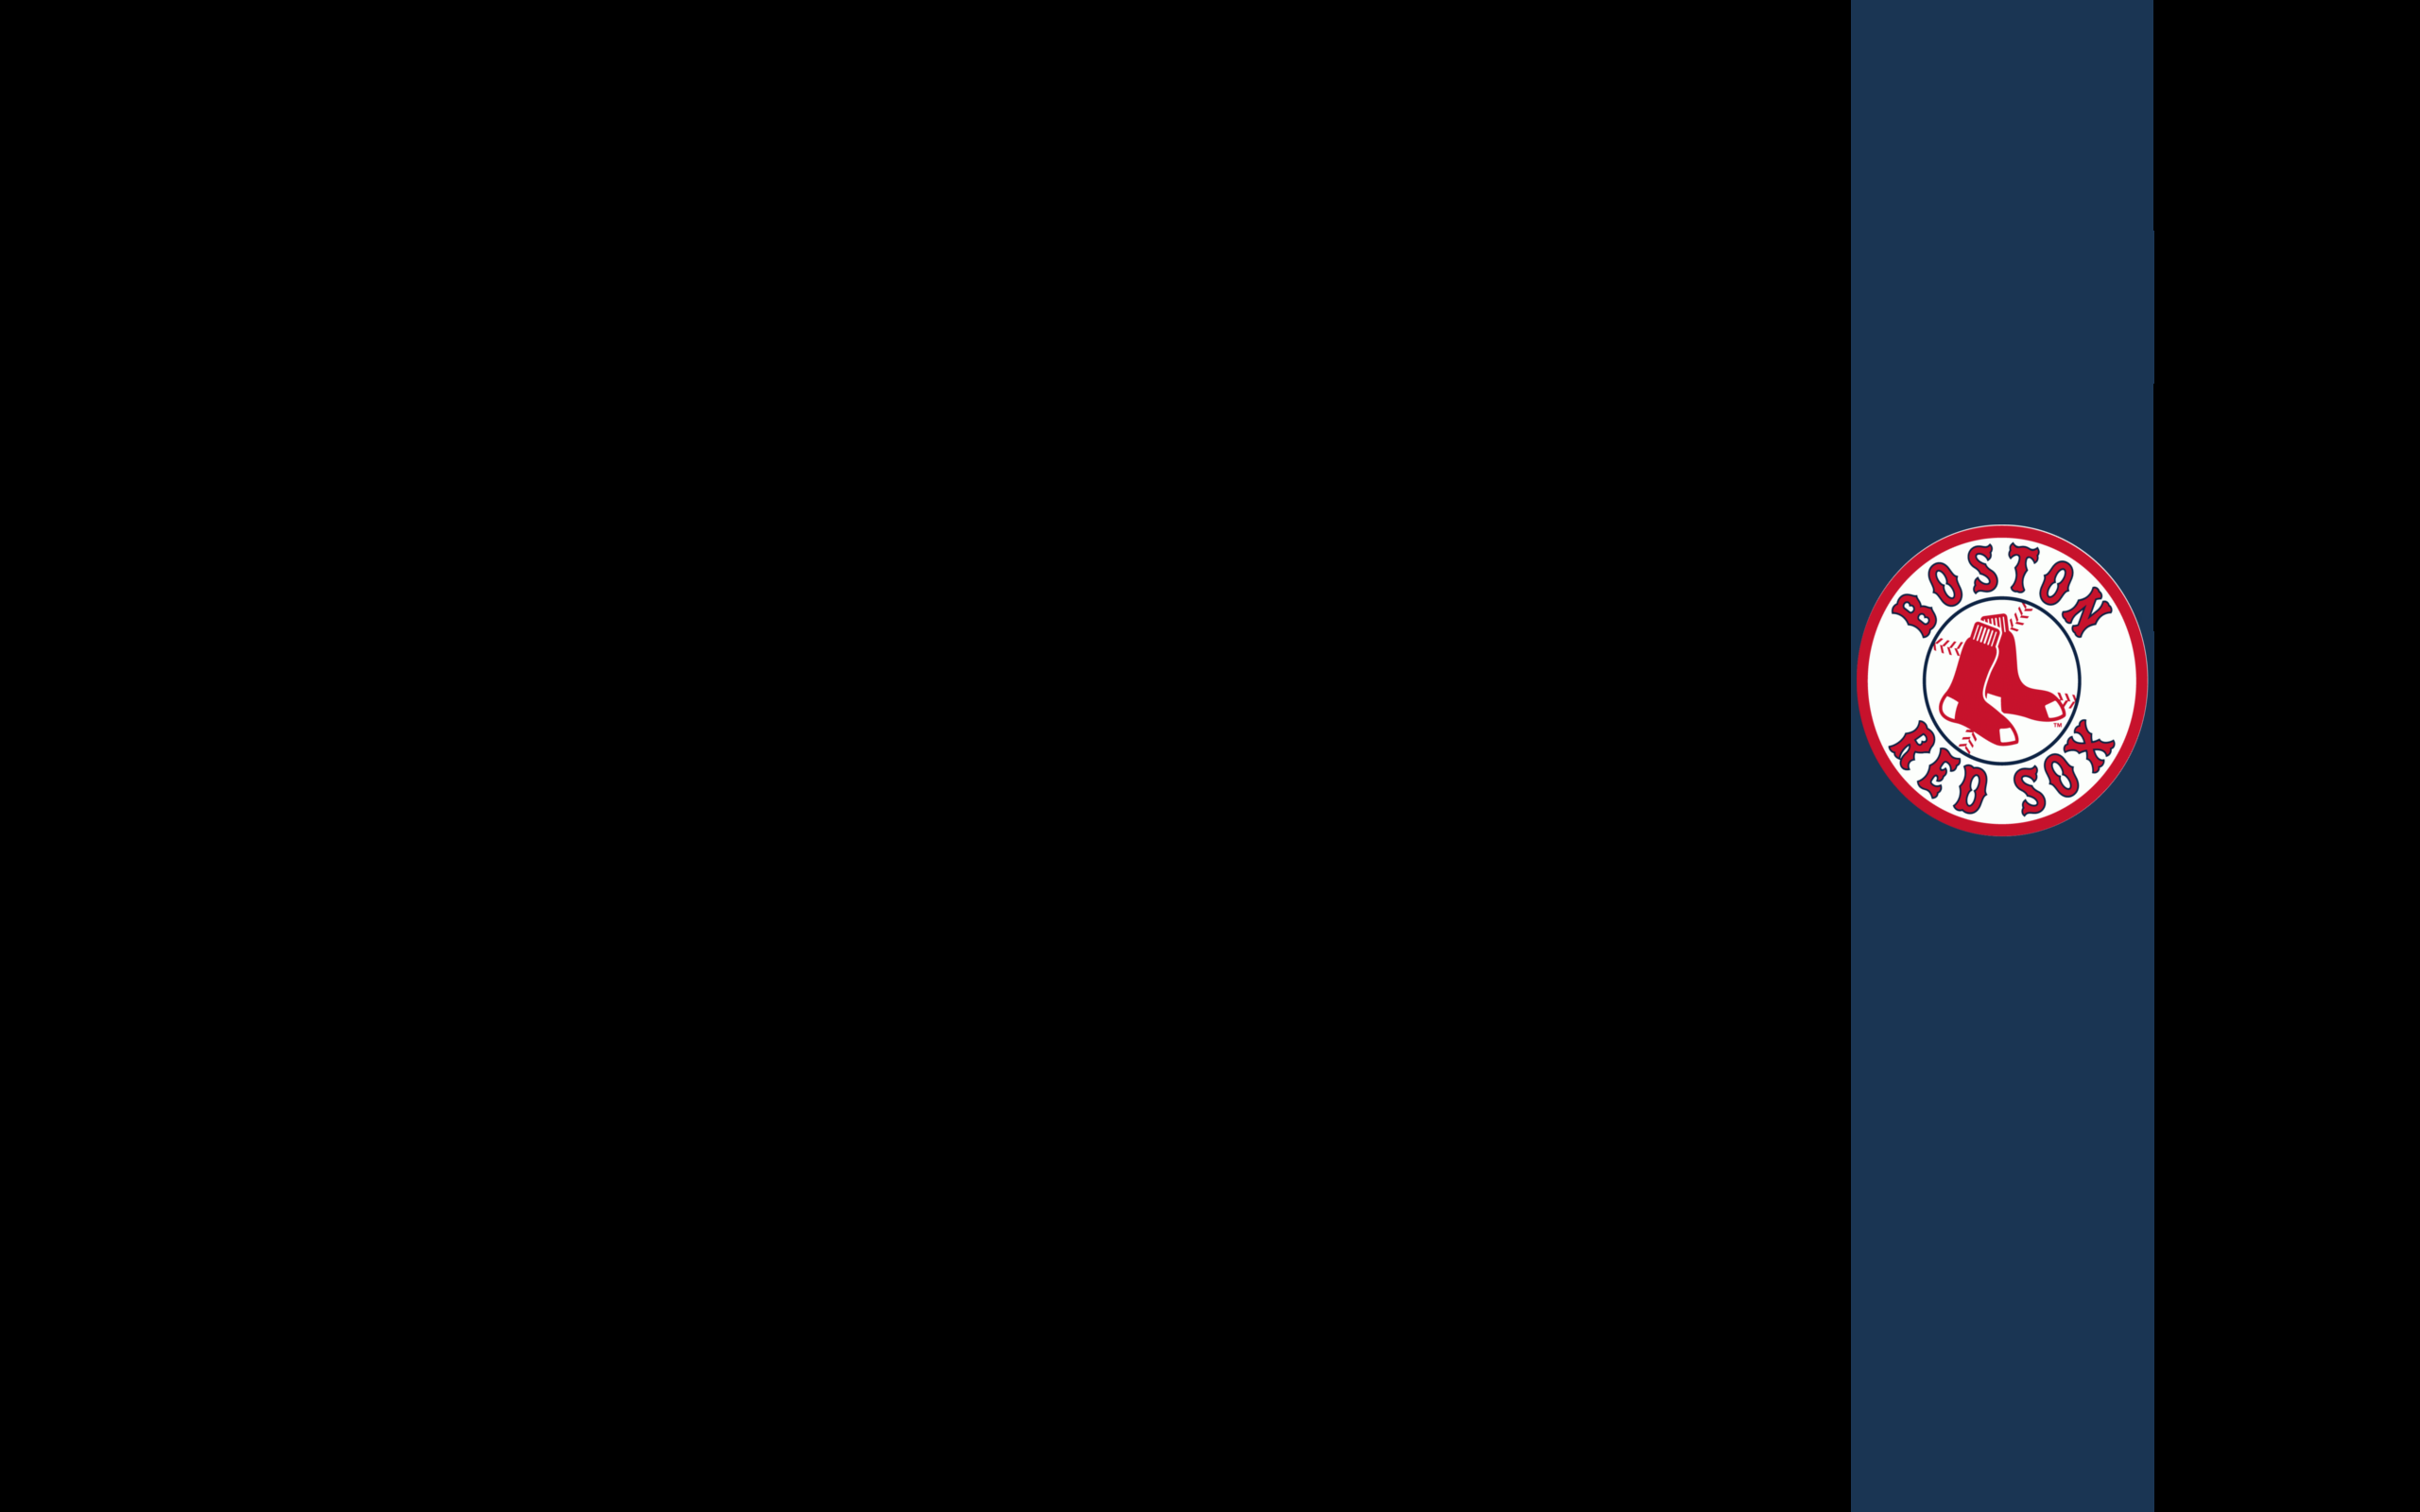 Boston Red Sox Wallpaper in High Resolution at Sports Wallpaper 2560x1600